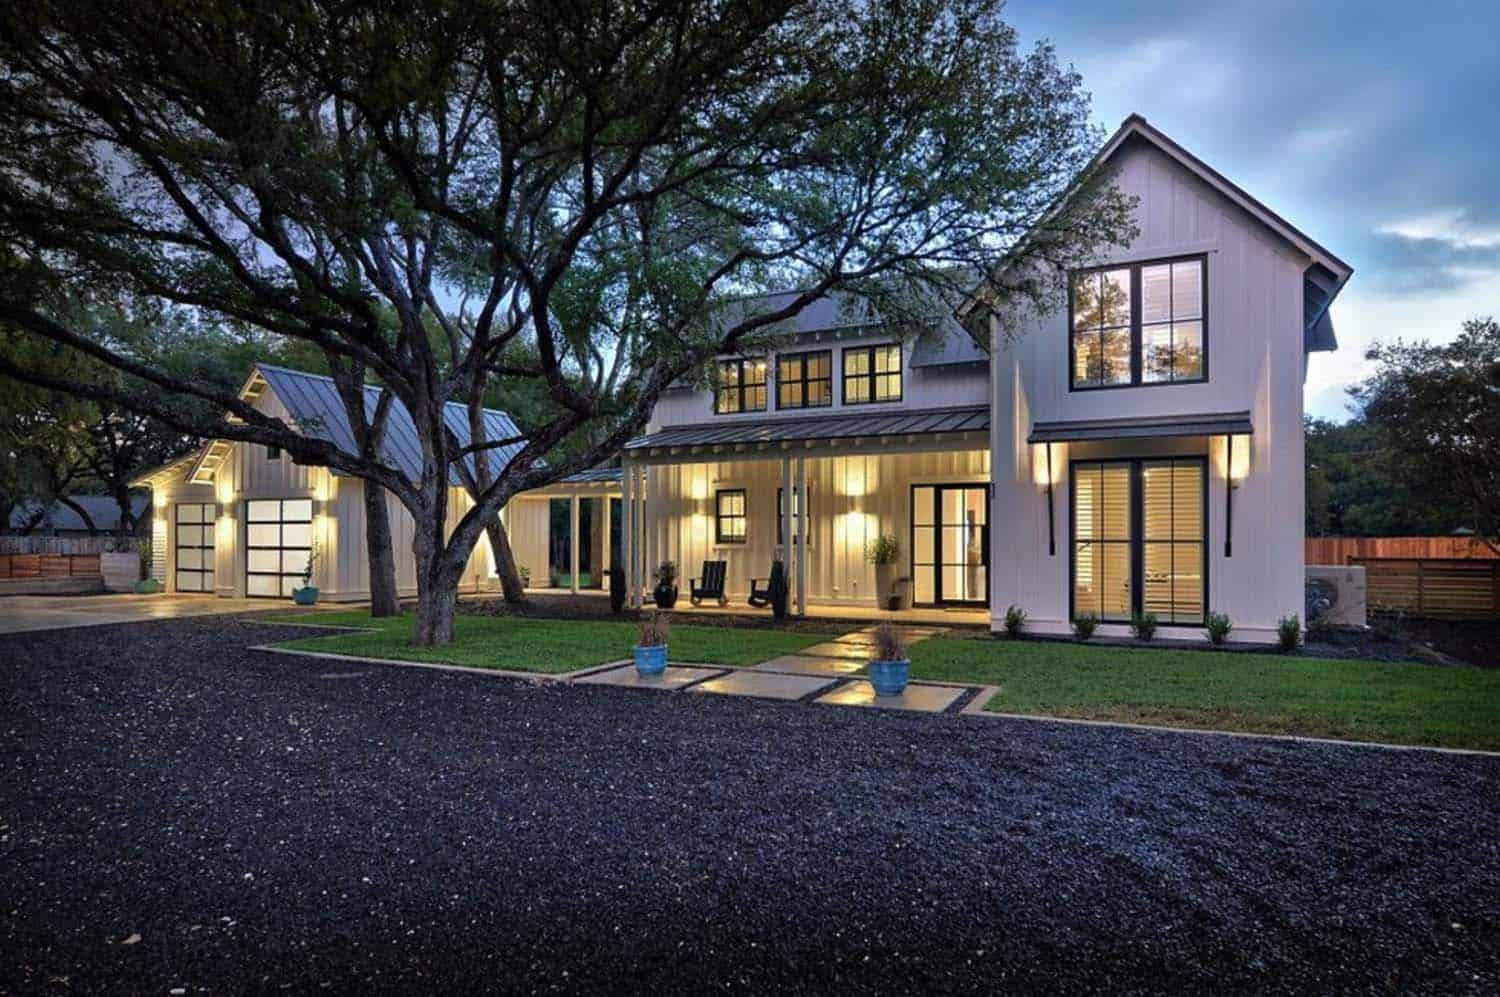 Modernized texas farmhouse filled with eye catching details for Farmhouse style building plans